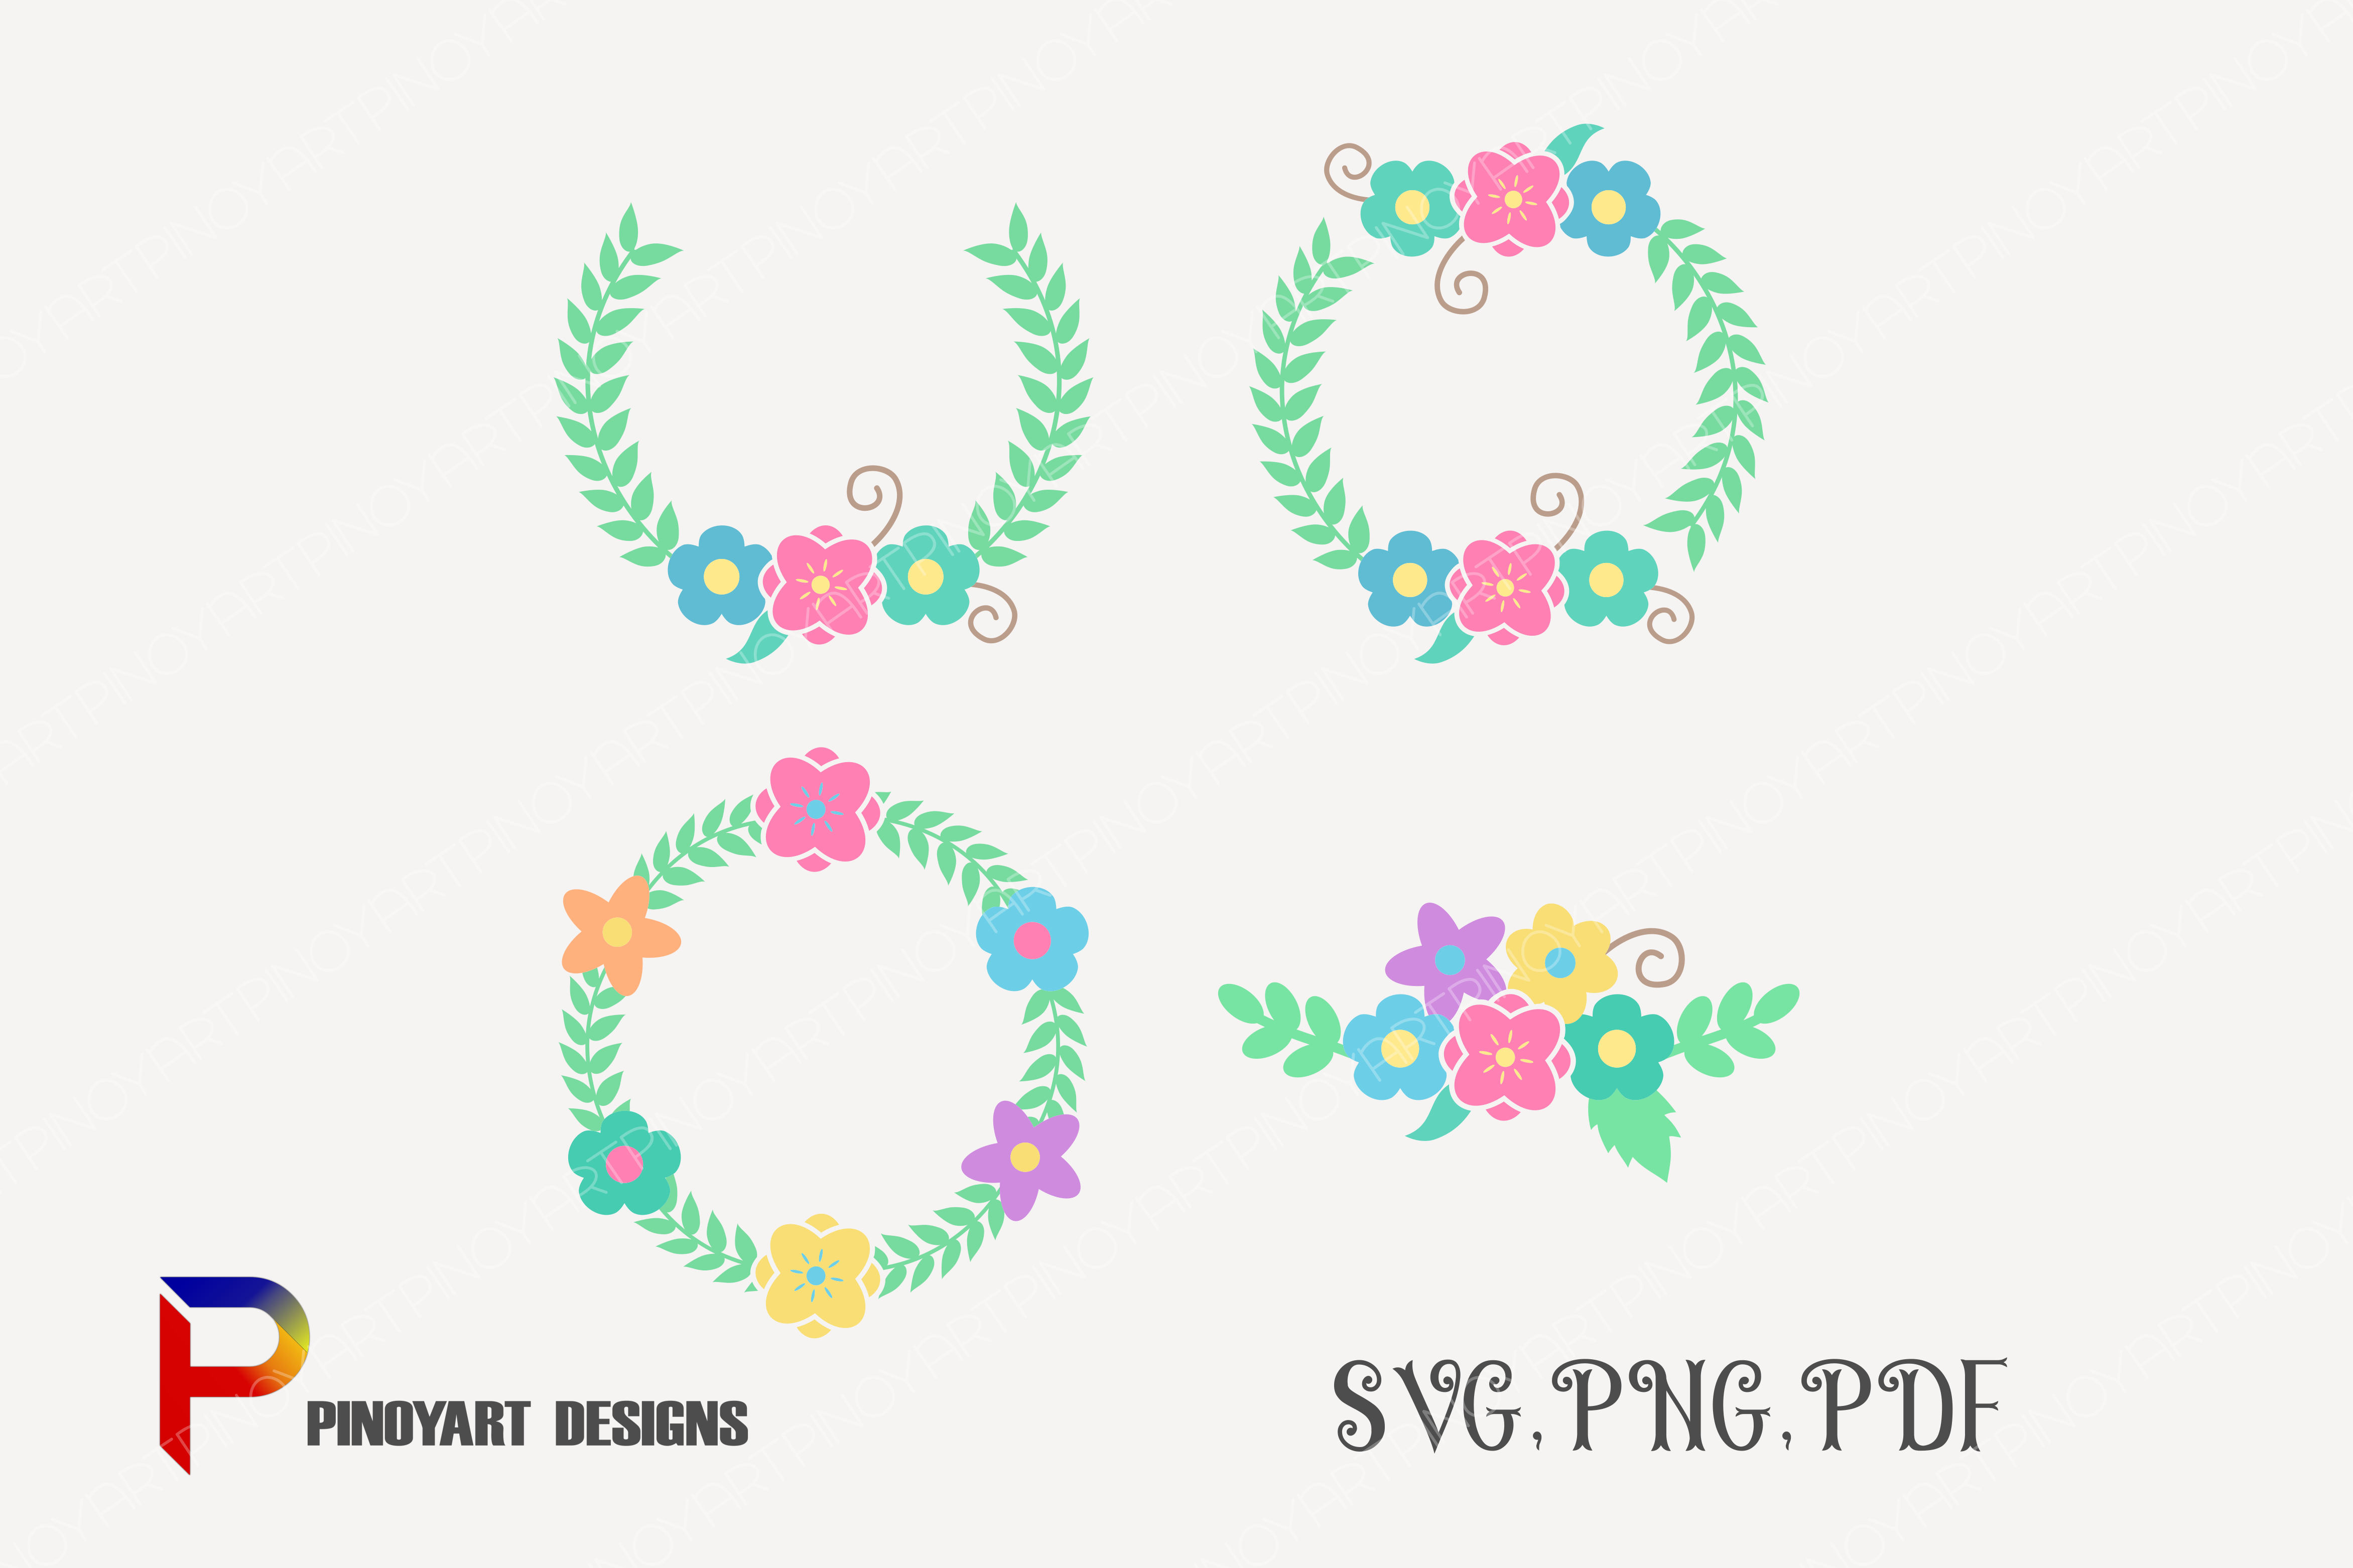 Download Free Flower Wreath Graphic By Pinoyartkreatib Creative Fabrica for Cricut Explore, Silhouette and other cutting machines.